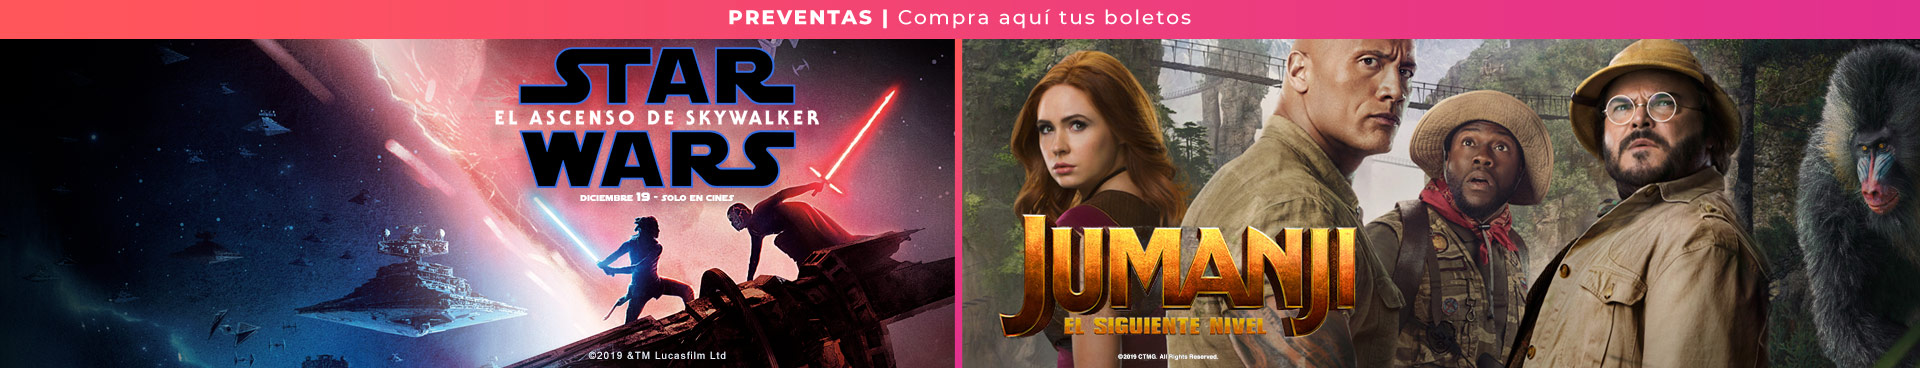 Preventas:  Star Wars El Ascenso de Skywalker / Jumanji 2